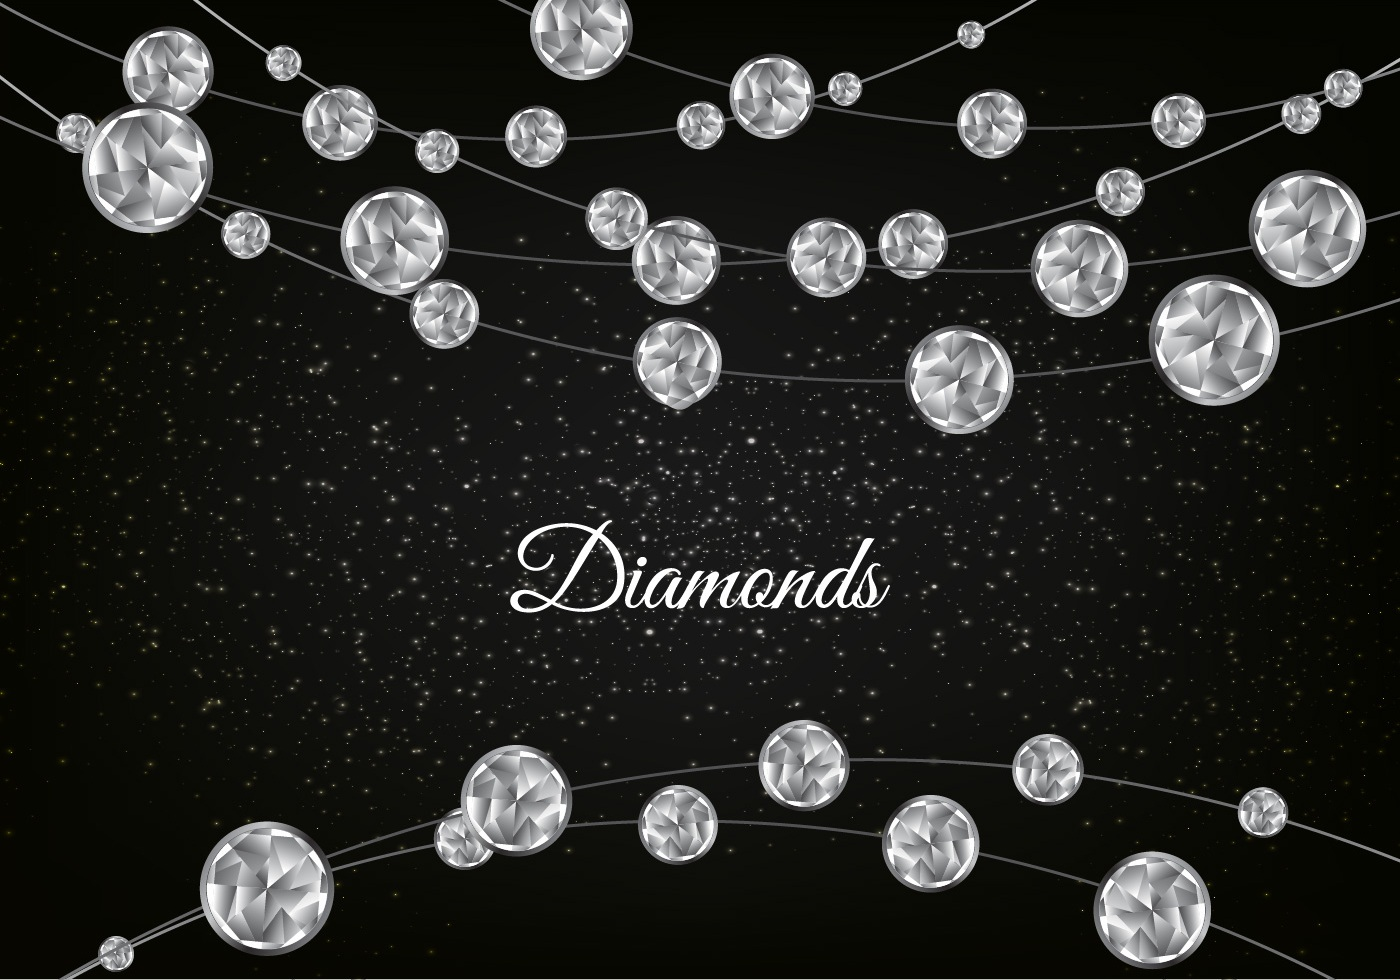 diamond vector background - photo #16